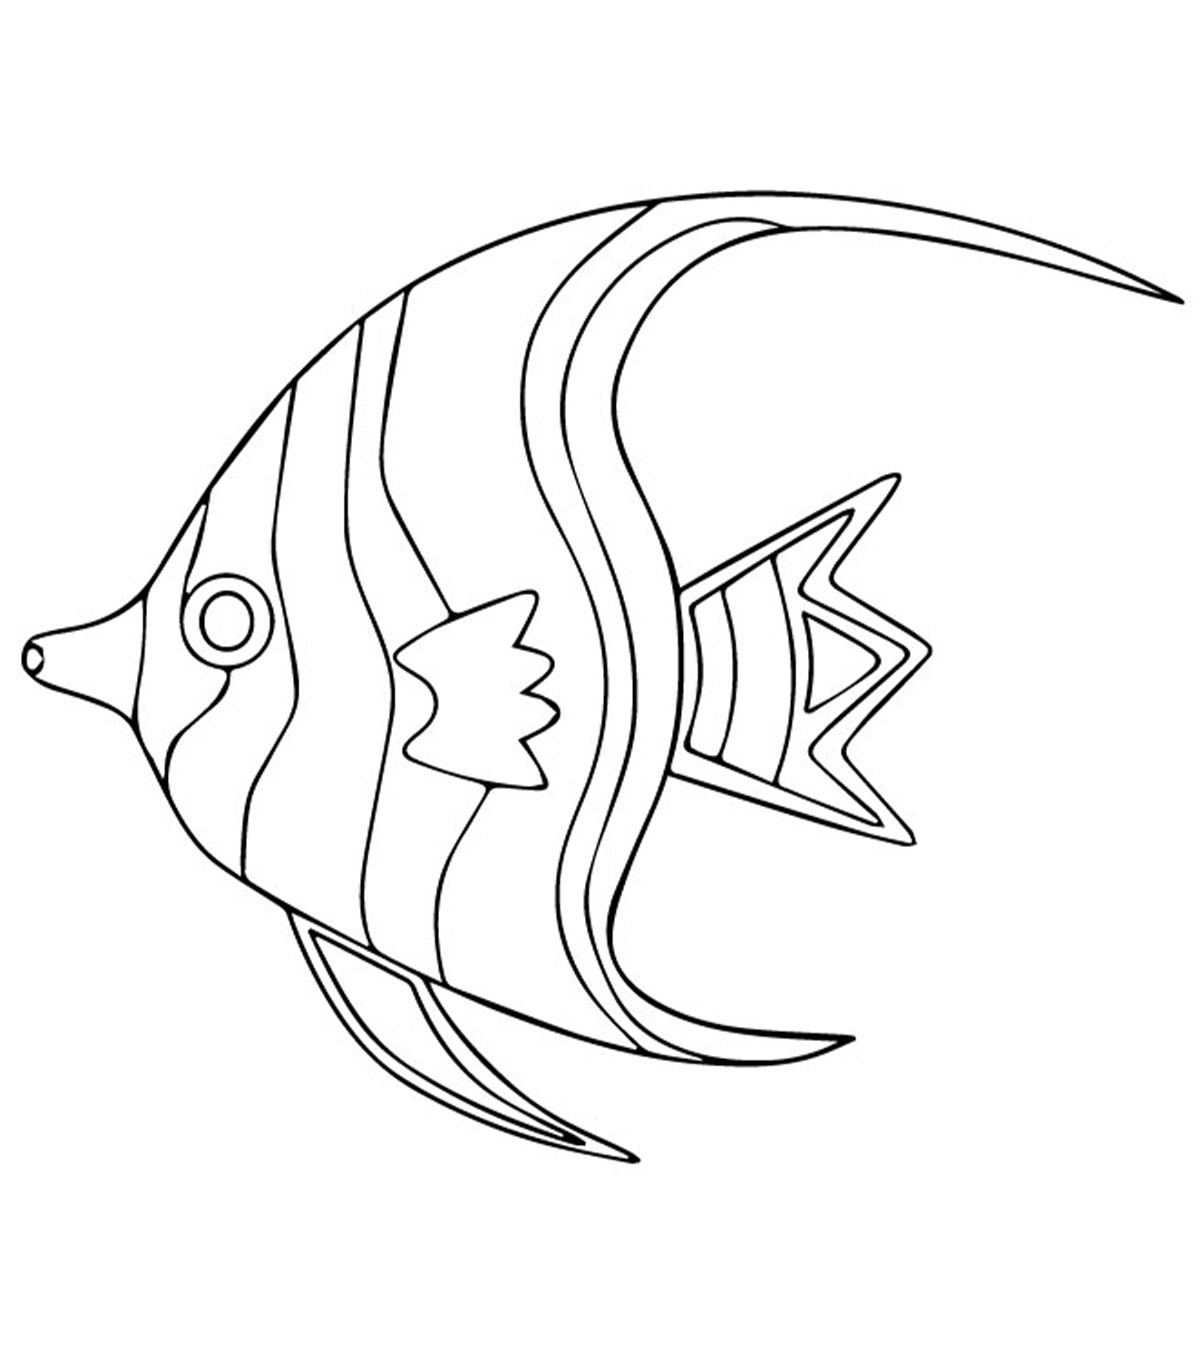 - 40 Finding Nemo Coloring Pages - Free Printables